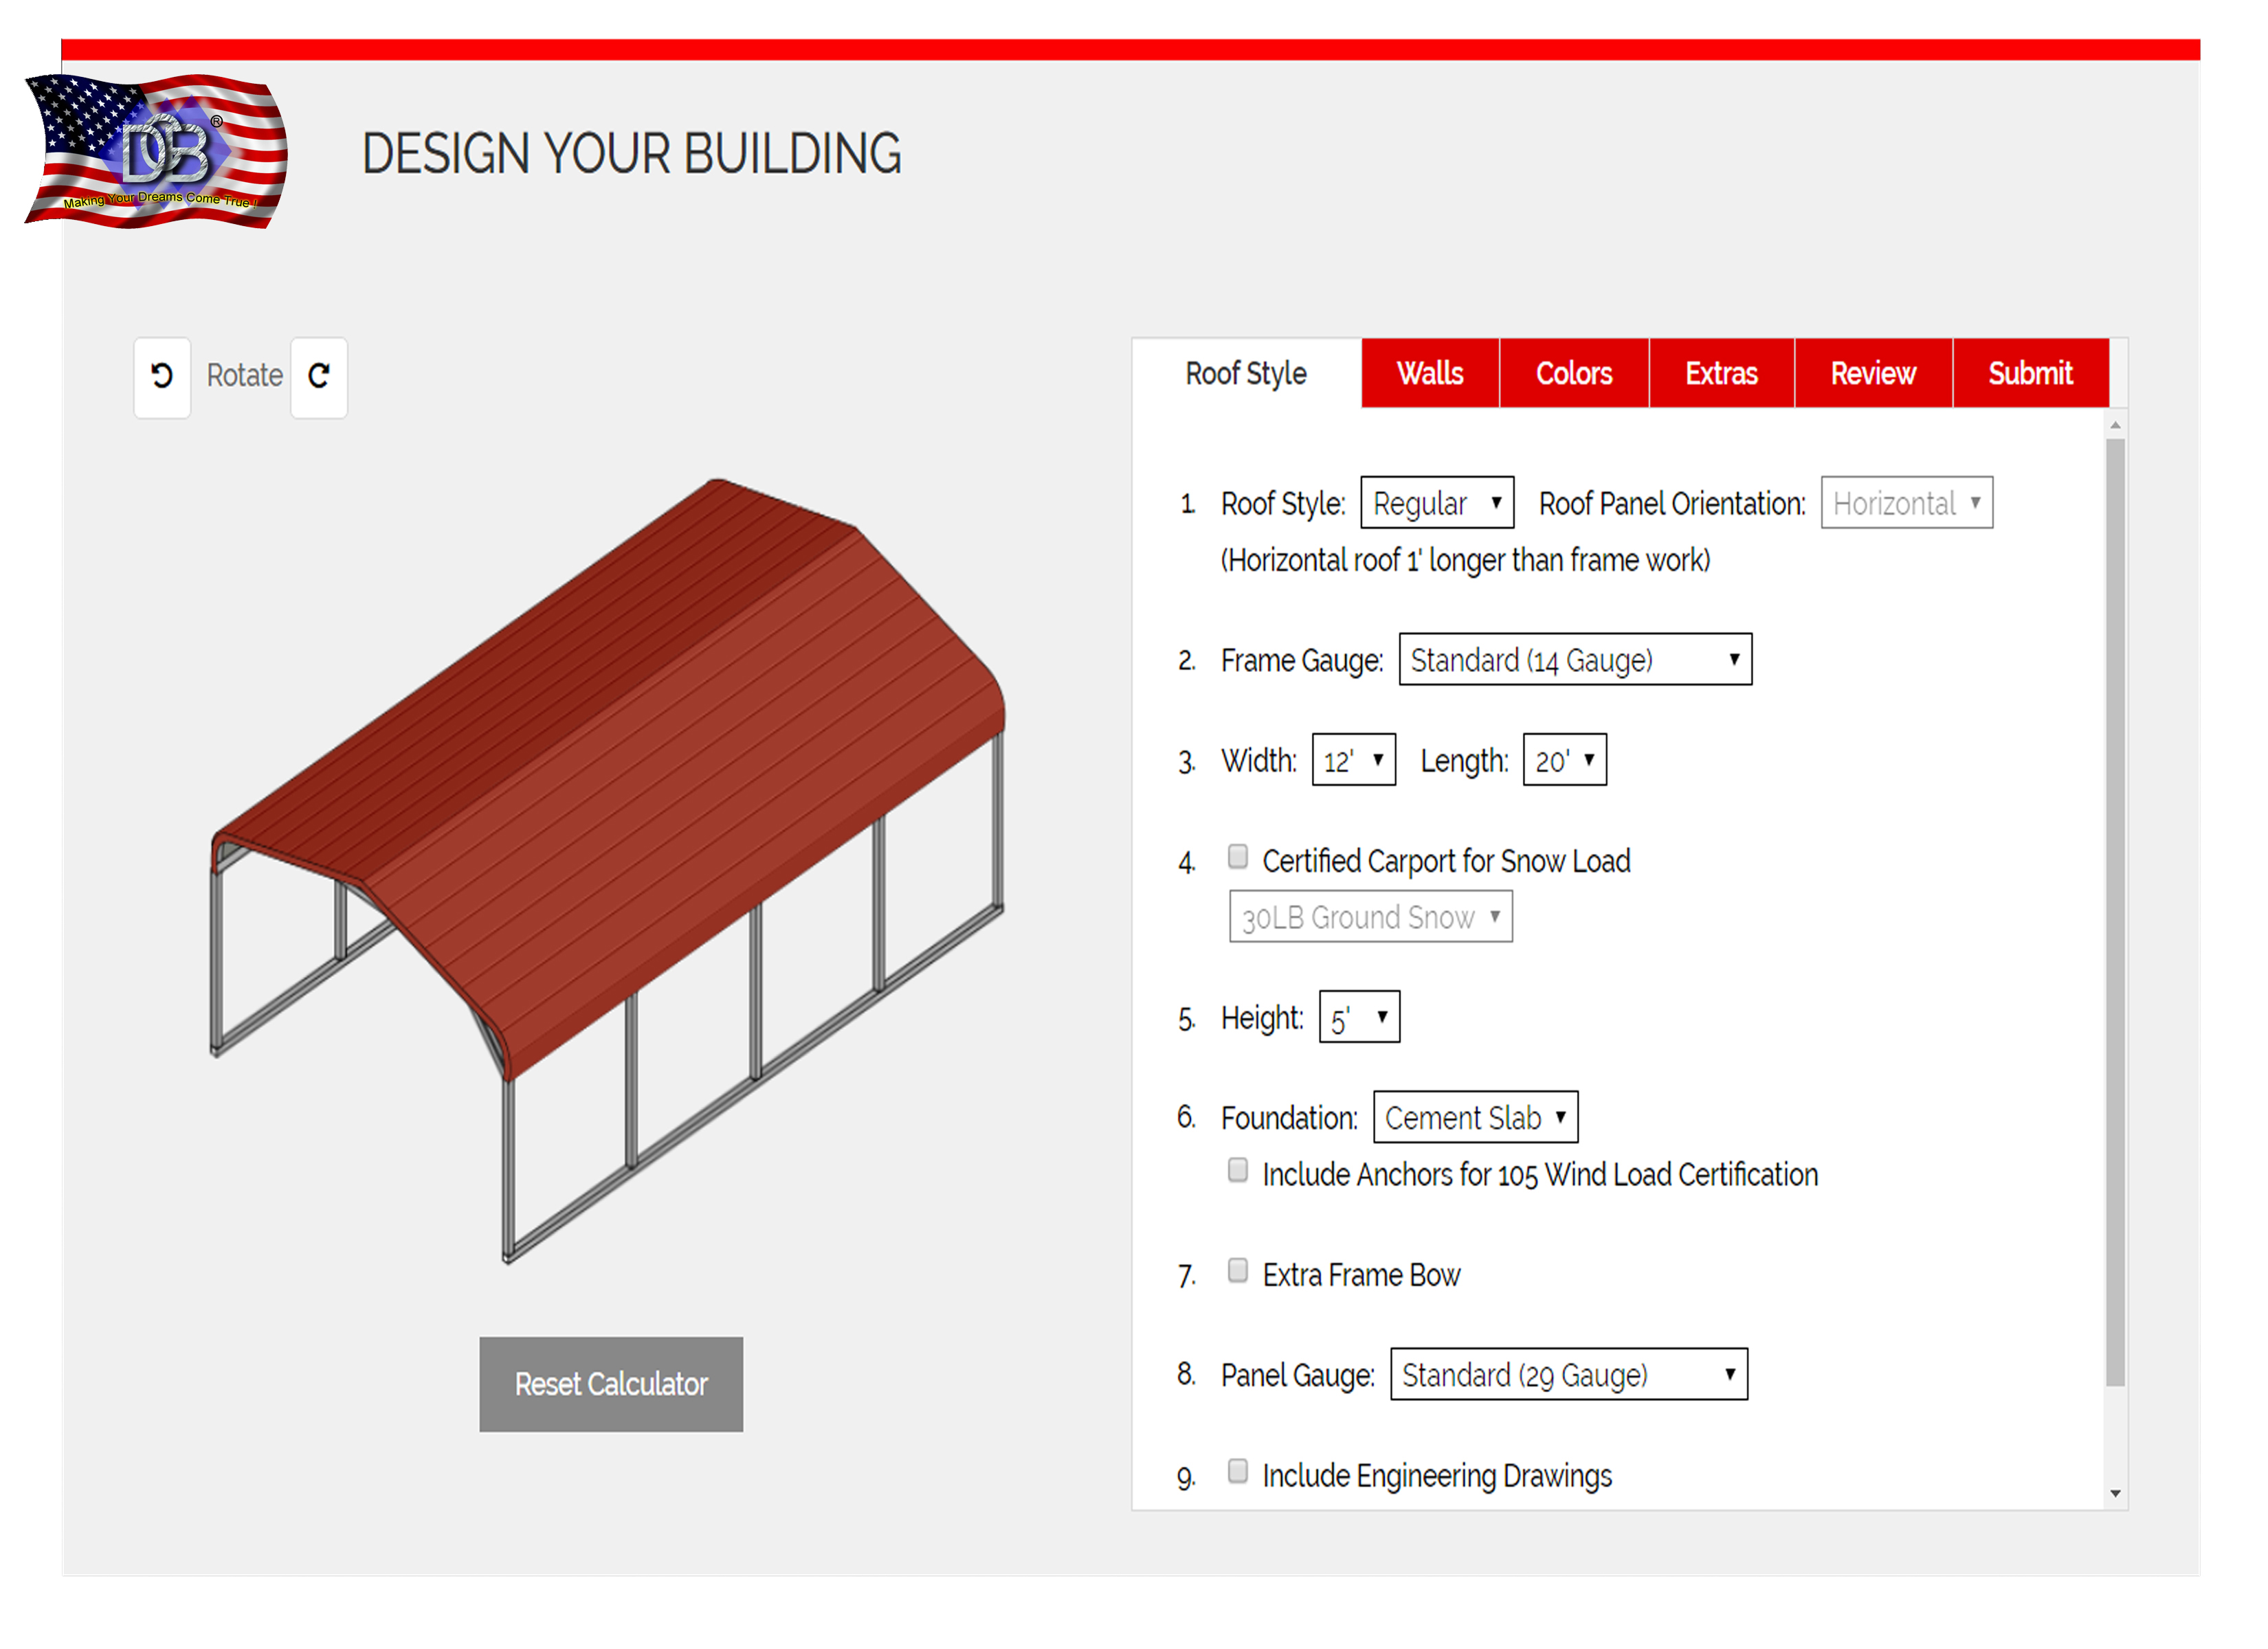 Design your own building image